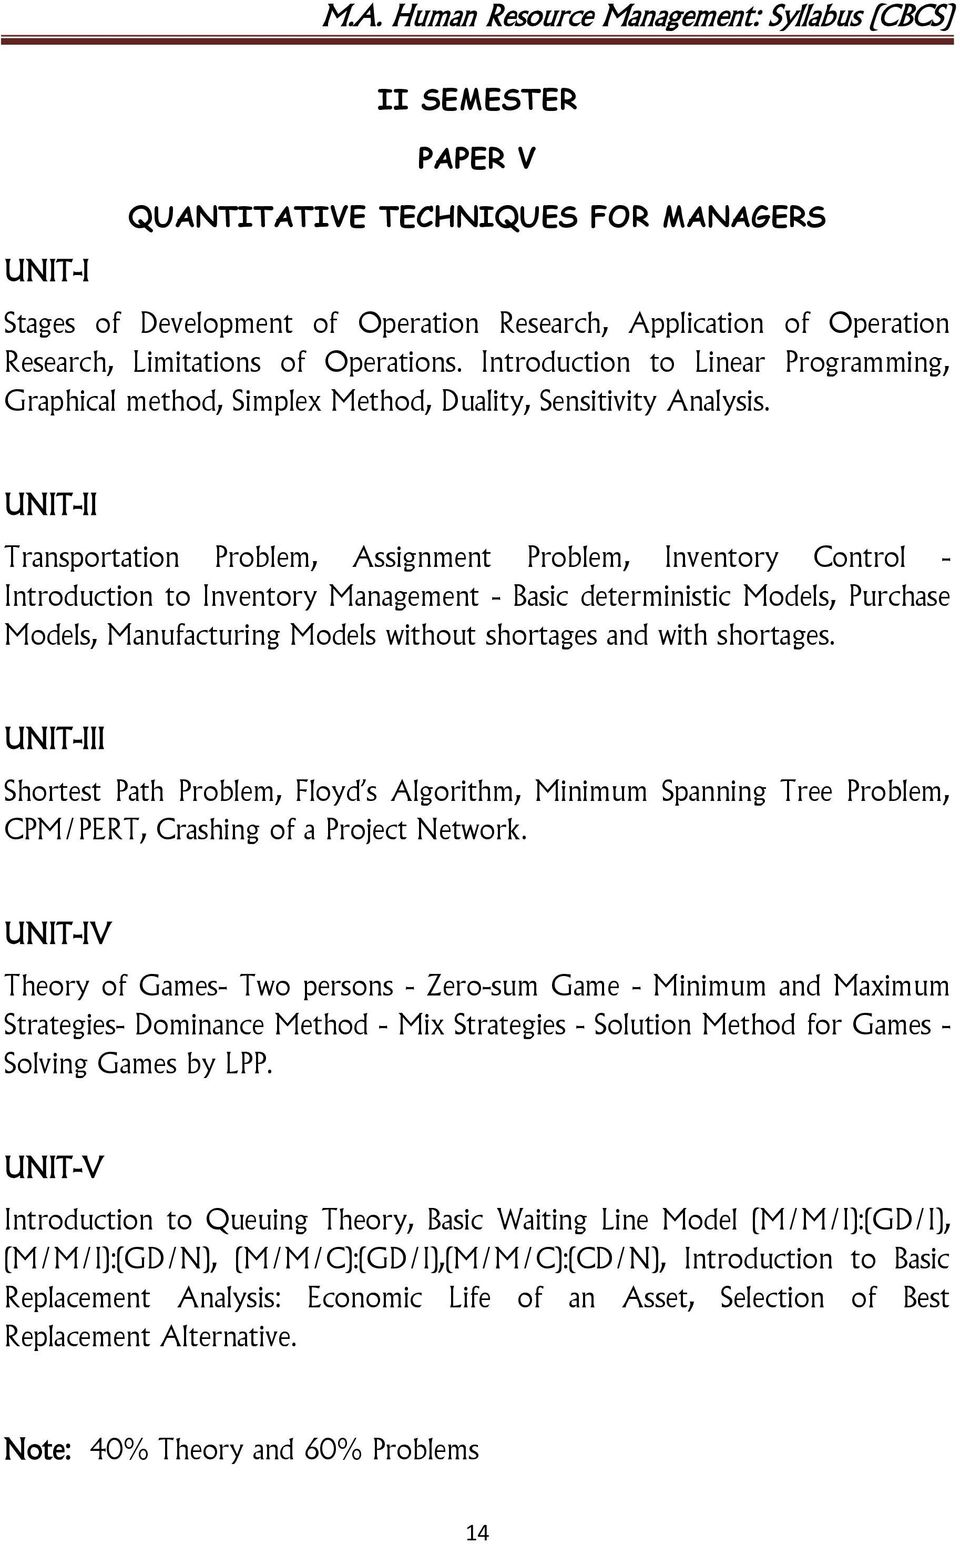 UNIT-II Transportation Problem, Assignment Problem, Inventory Control - Introduction to Inventory Management - Basic deterministic Models, Purchase Models, Manufacturing Models without shortages and